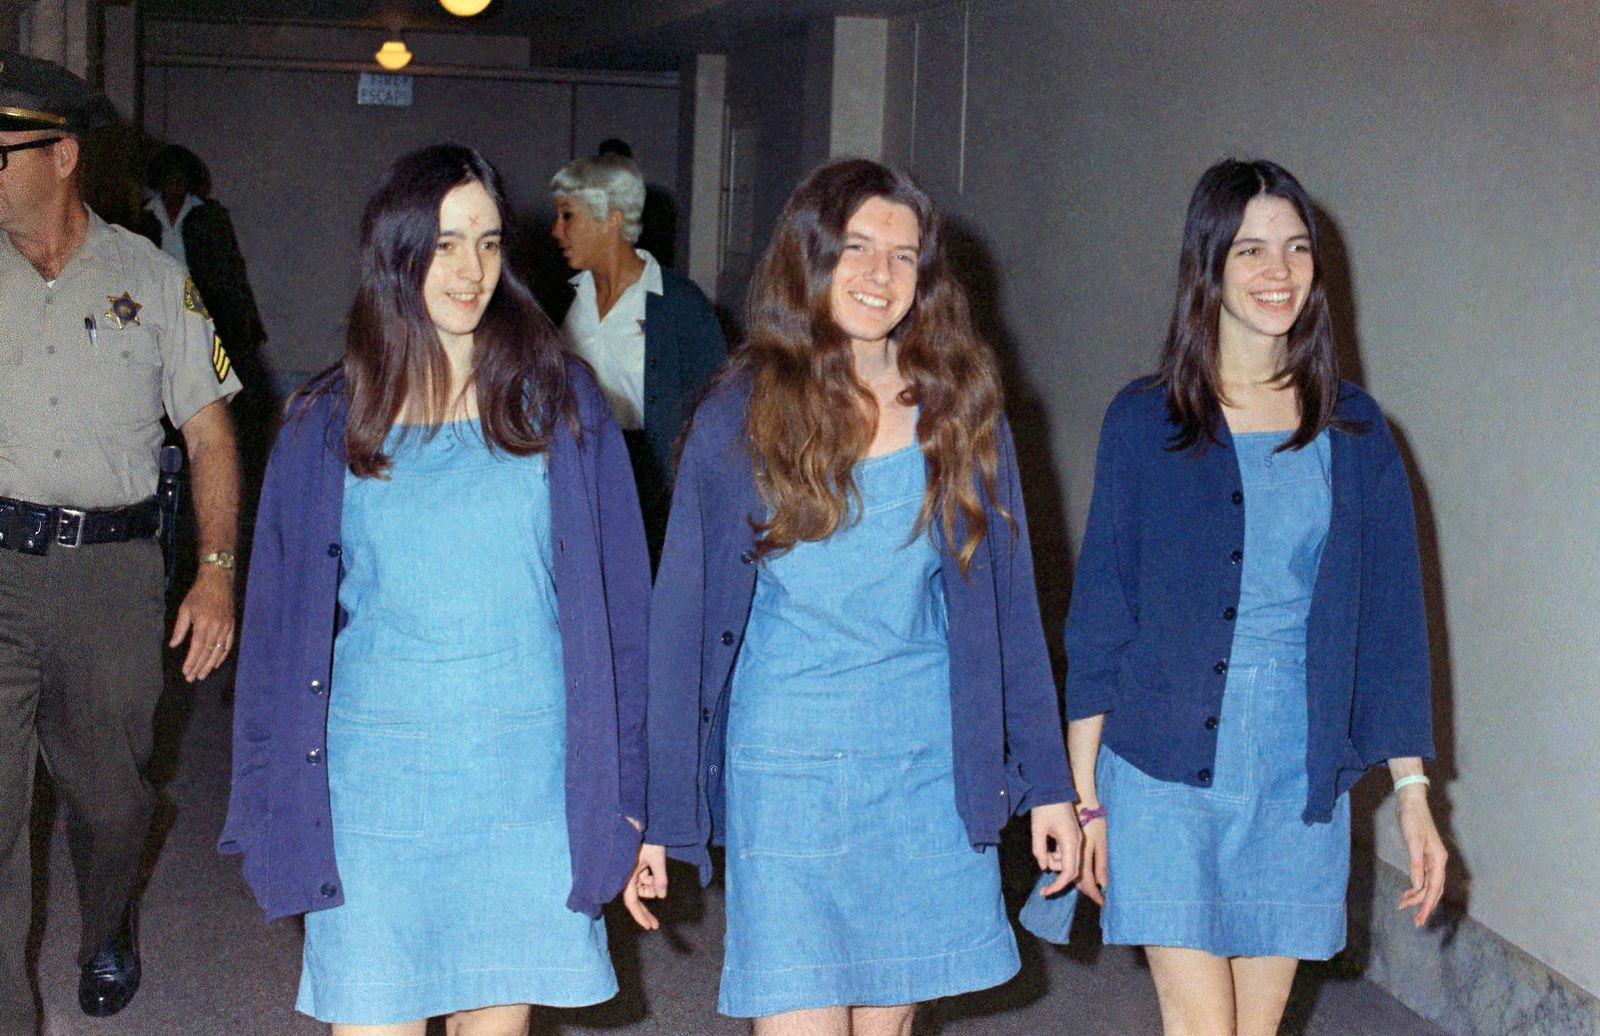 FILE - In this Aug. 20, 1970, file photo, Charles Manson followers, from left, Susan Atkins, Patricia Krenwinkel and Leslie Van Houten walk to court to appear for their roles in the 1969 cult killings of seven people in Los Angeles. (AP Photo/George Brich, File)